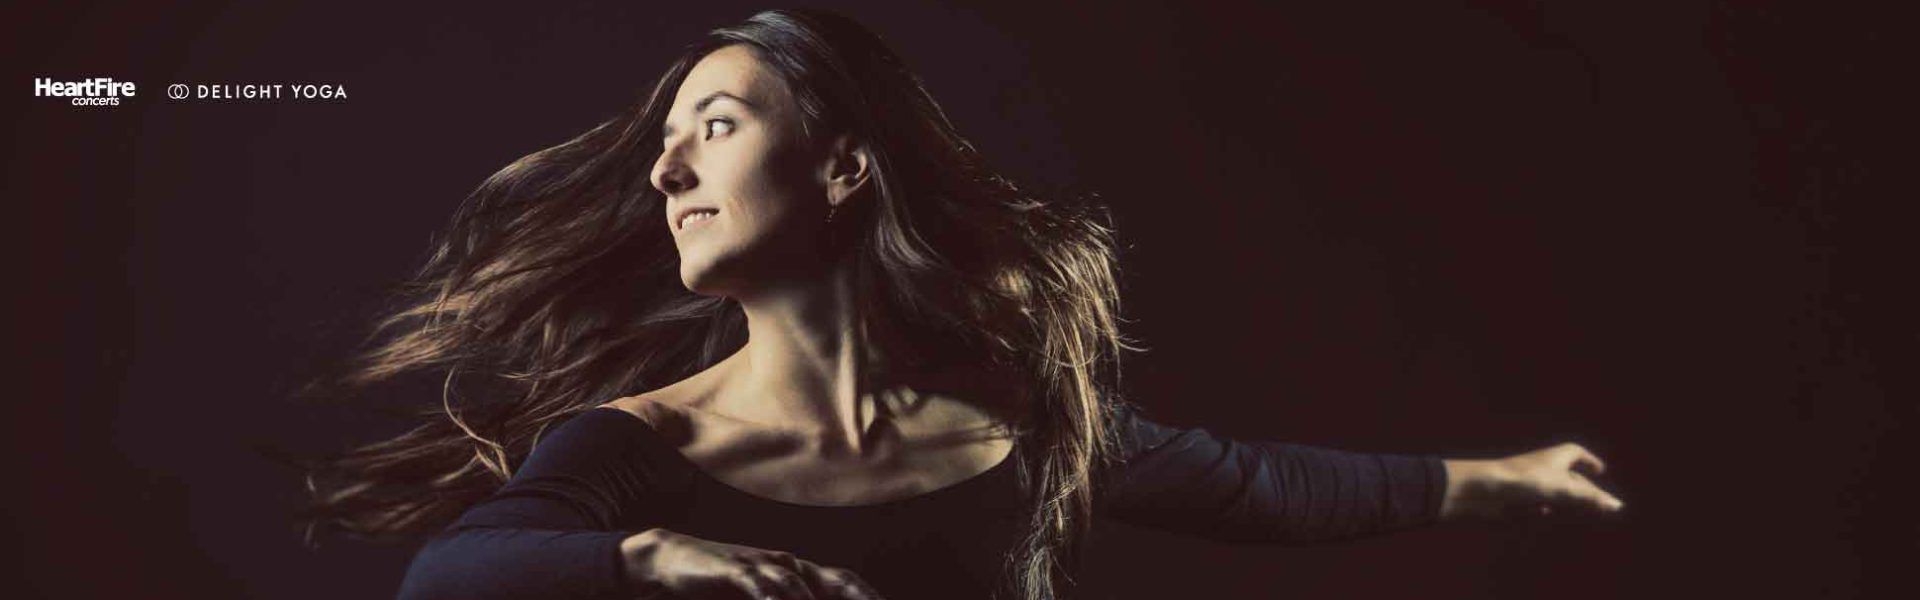 Ayla Nereo Finding Voice Workshop 1 July 2018 @Delight Yoga Amsterdam